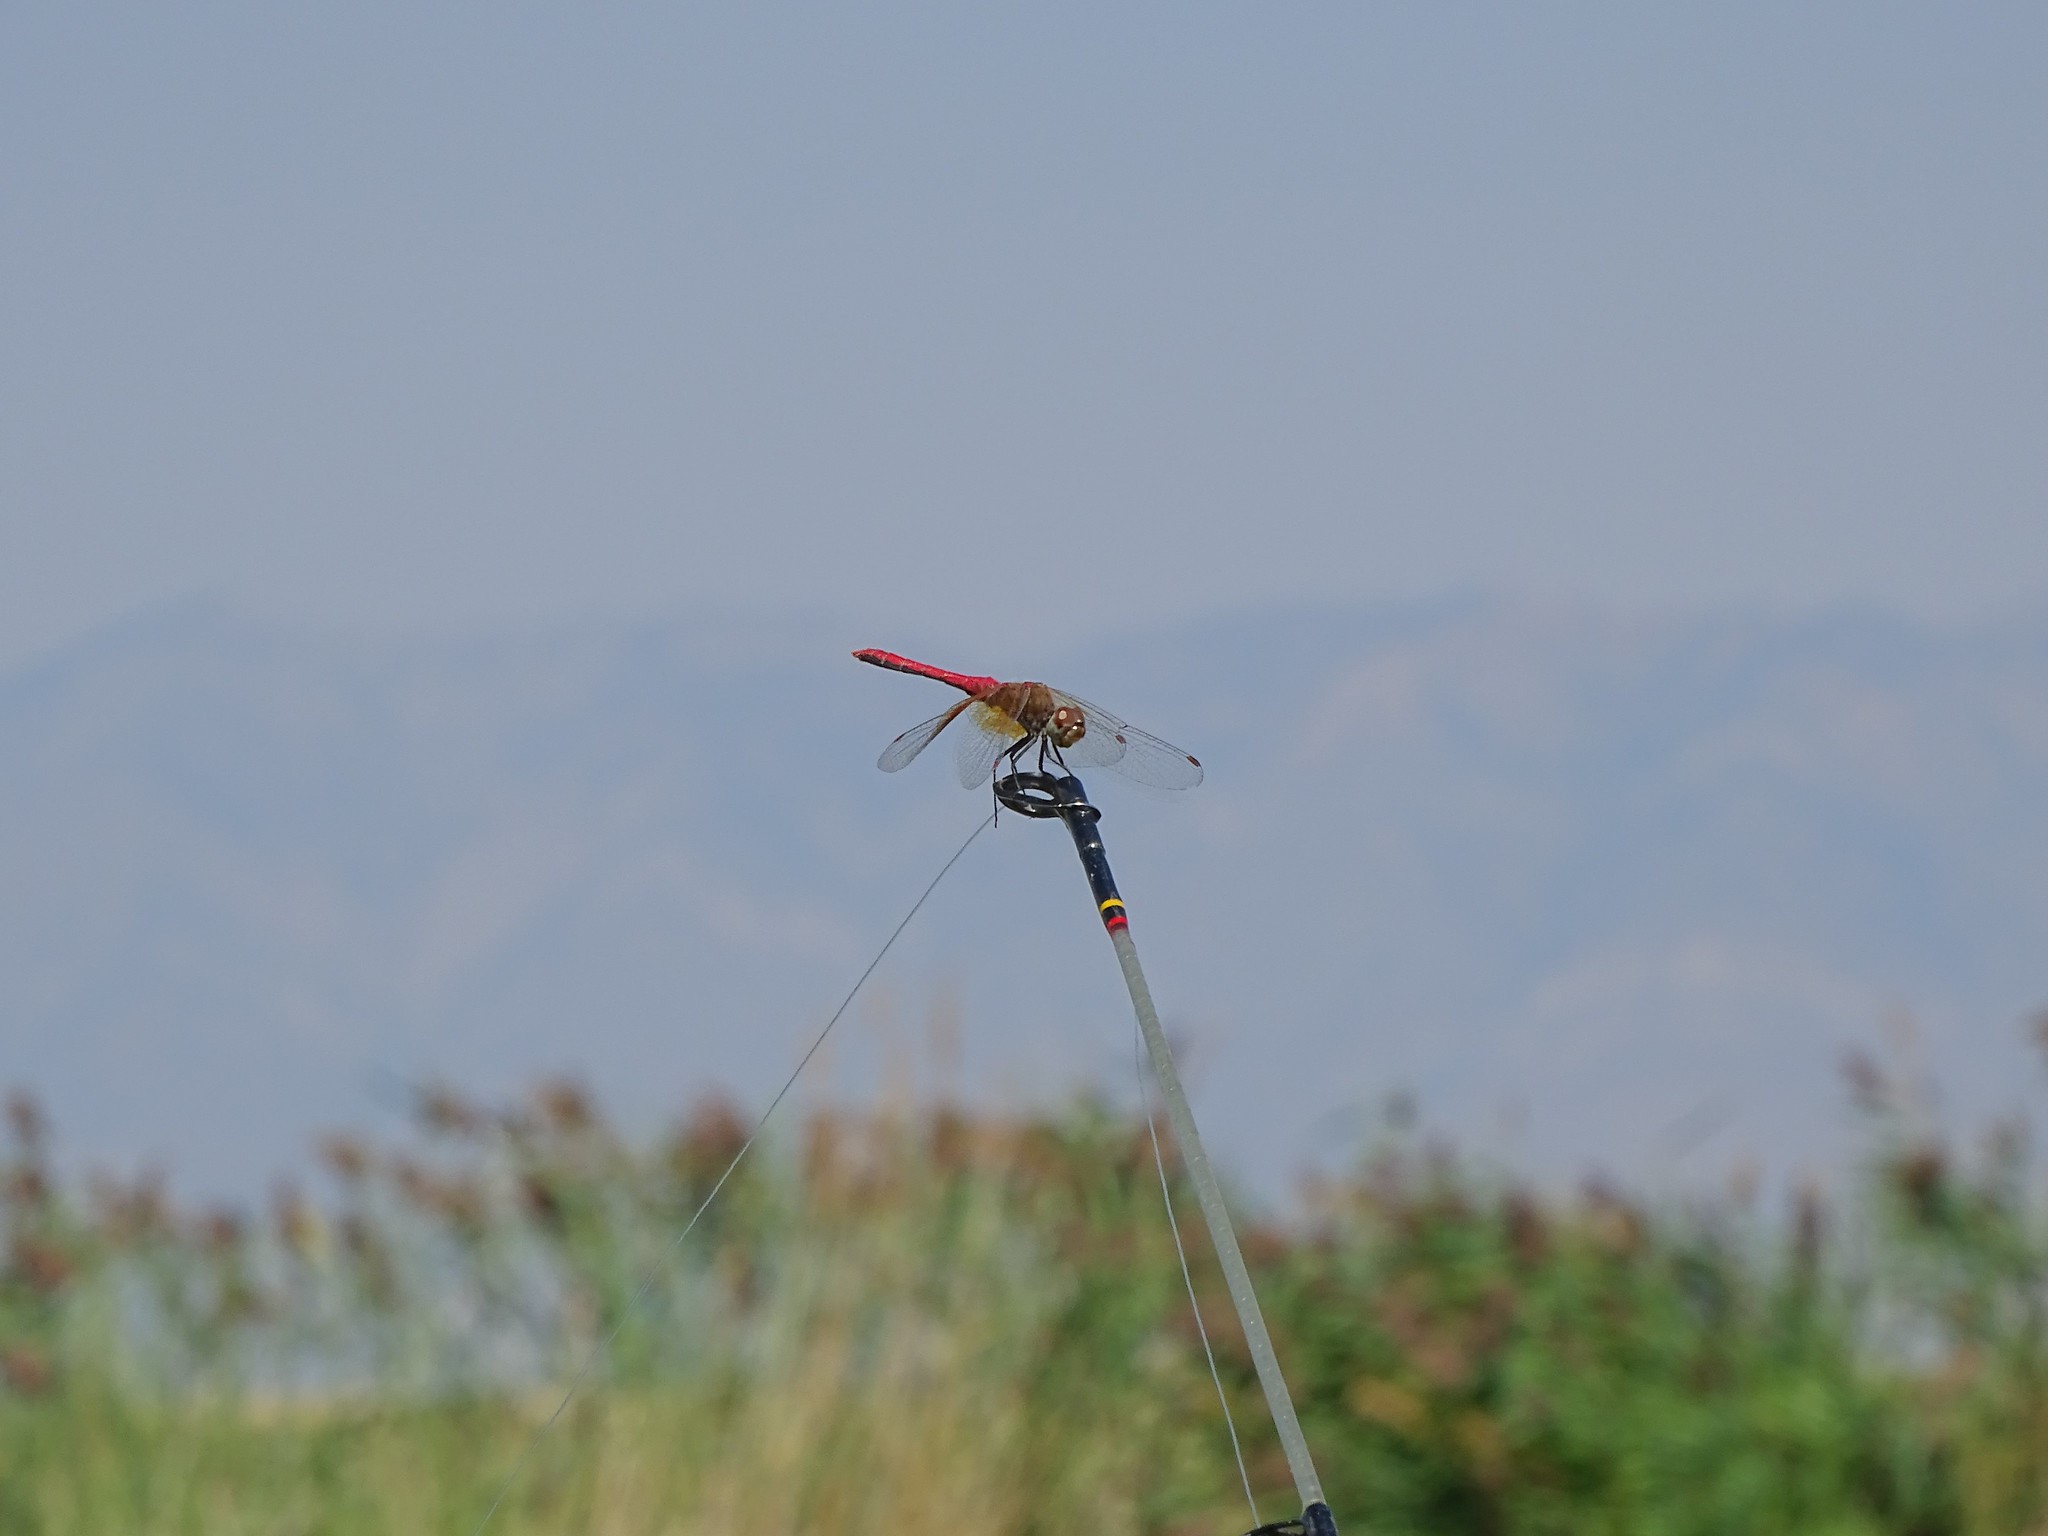 A dragonfly perches on the tip of a fishing rod.